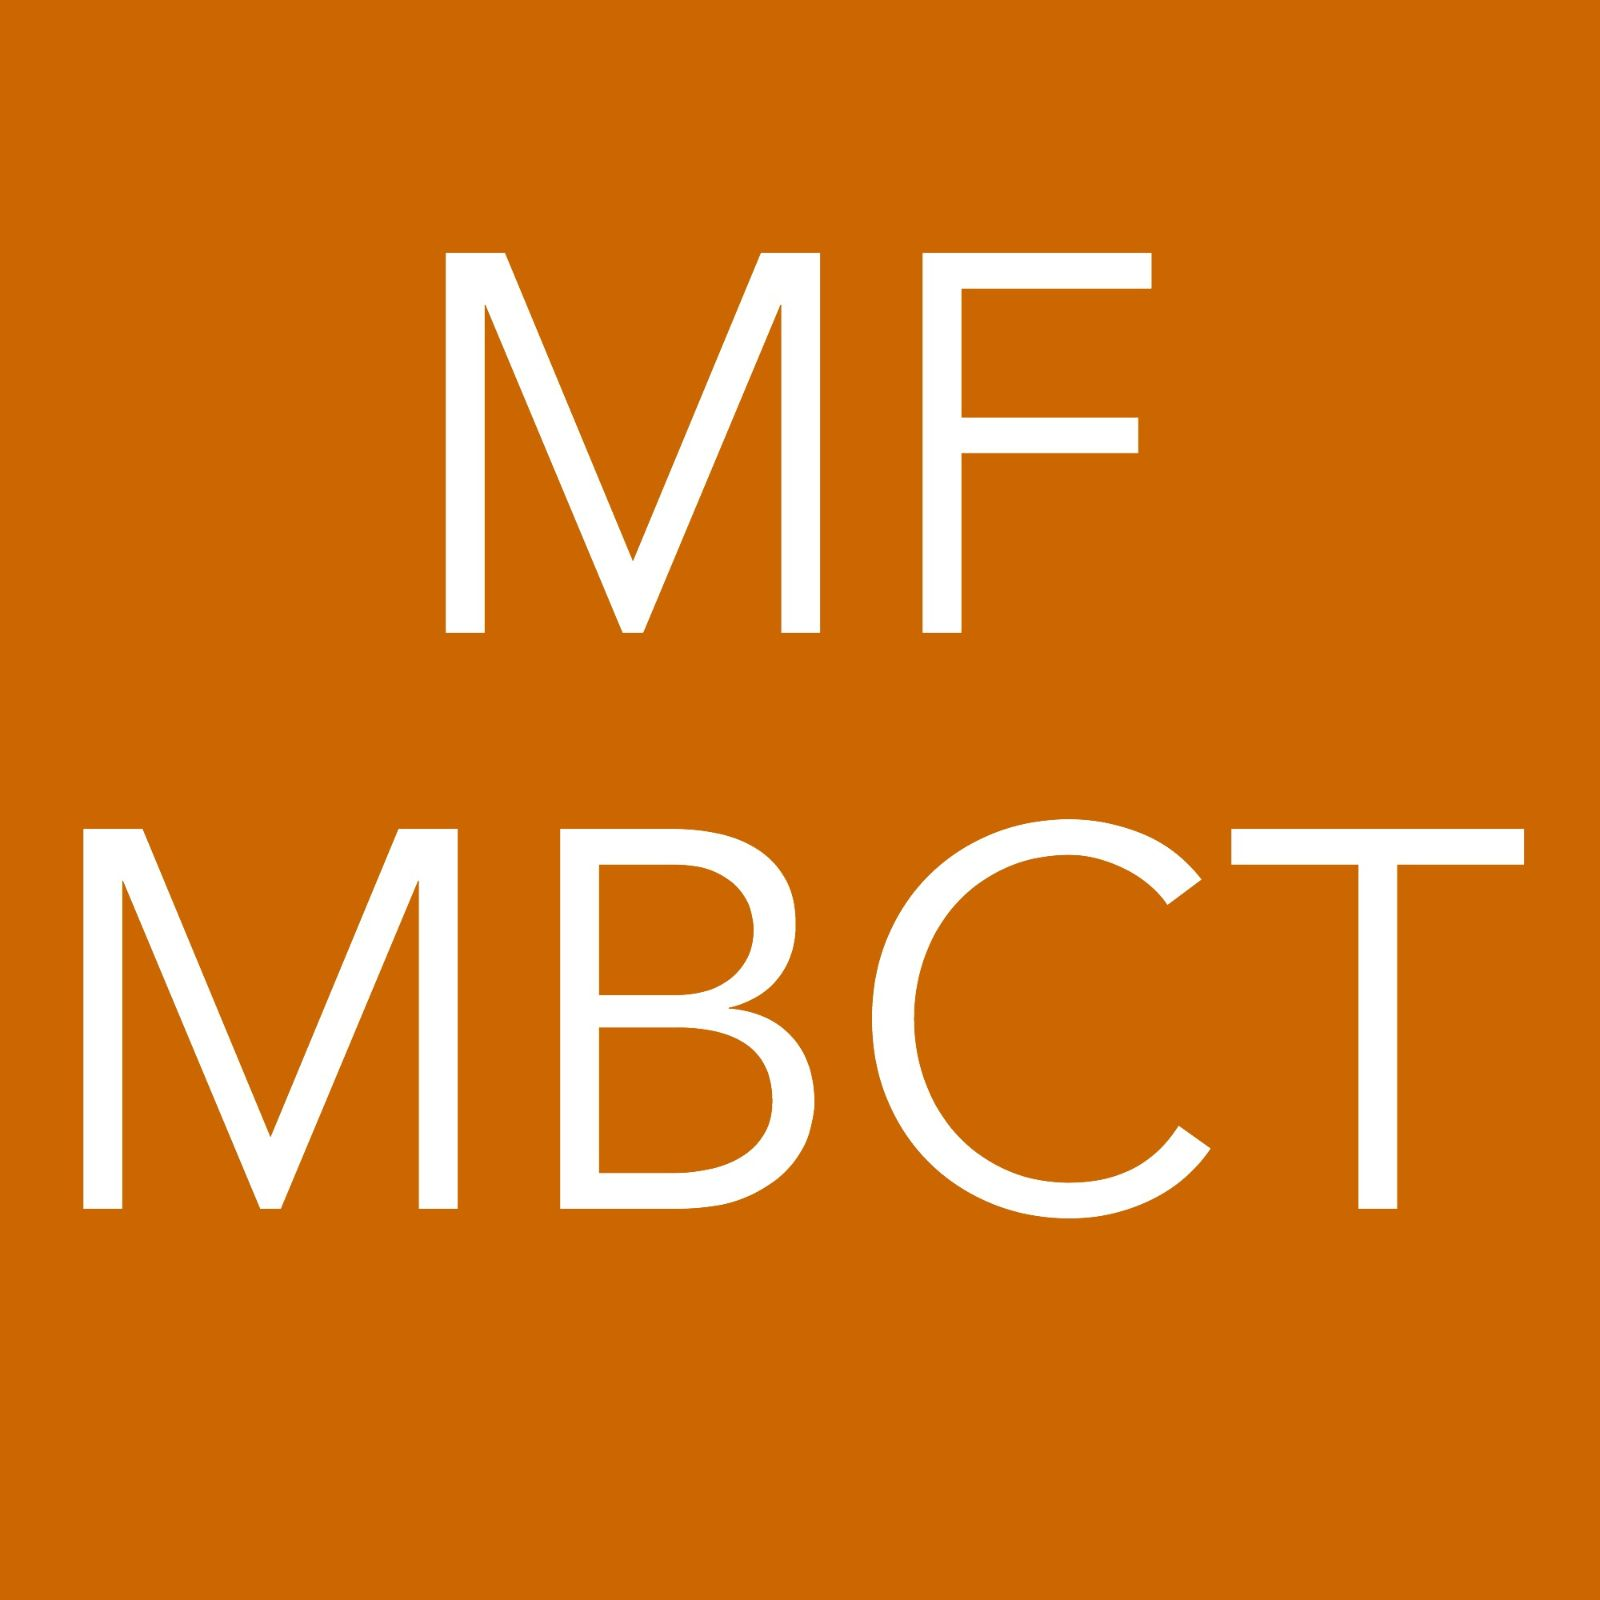 8210 [MF-MBCT] Start 19 september 2019 wg